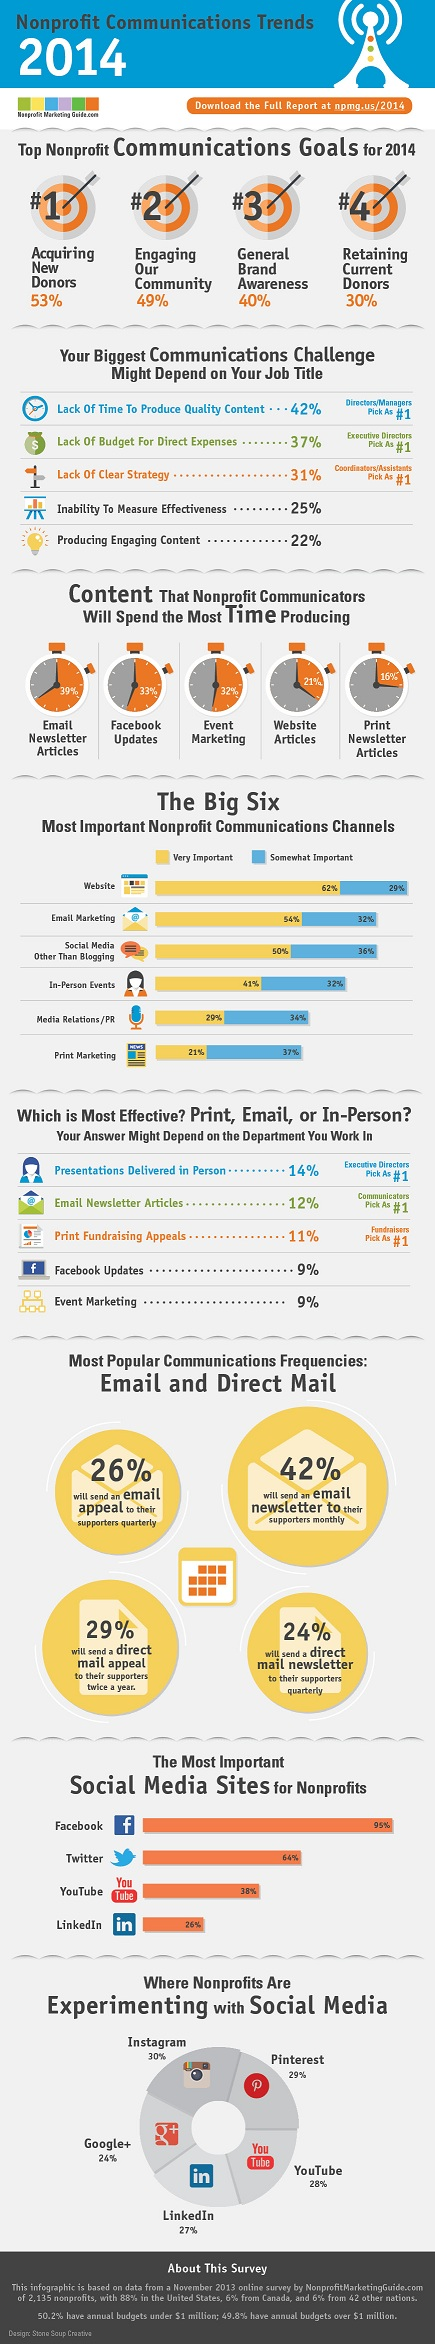 2014NonprofitCommunicationsTrends1